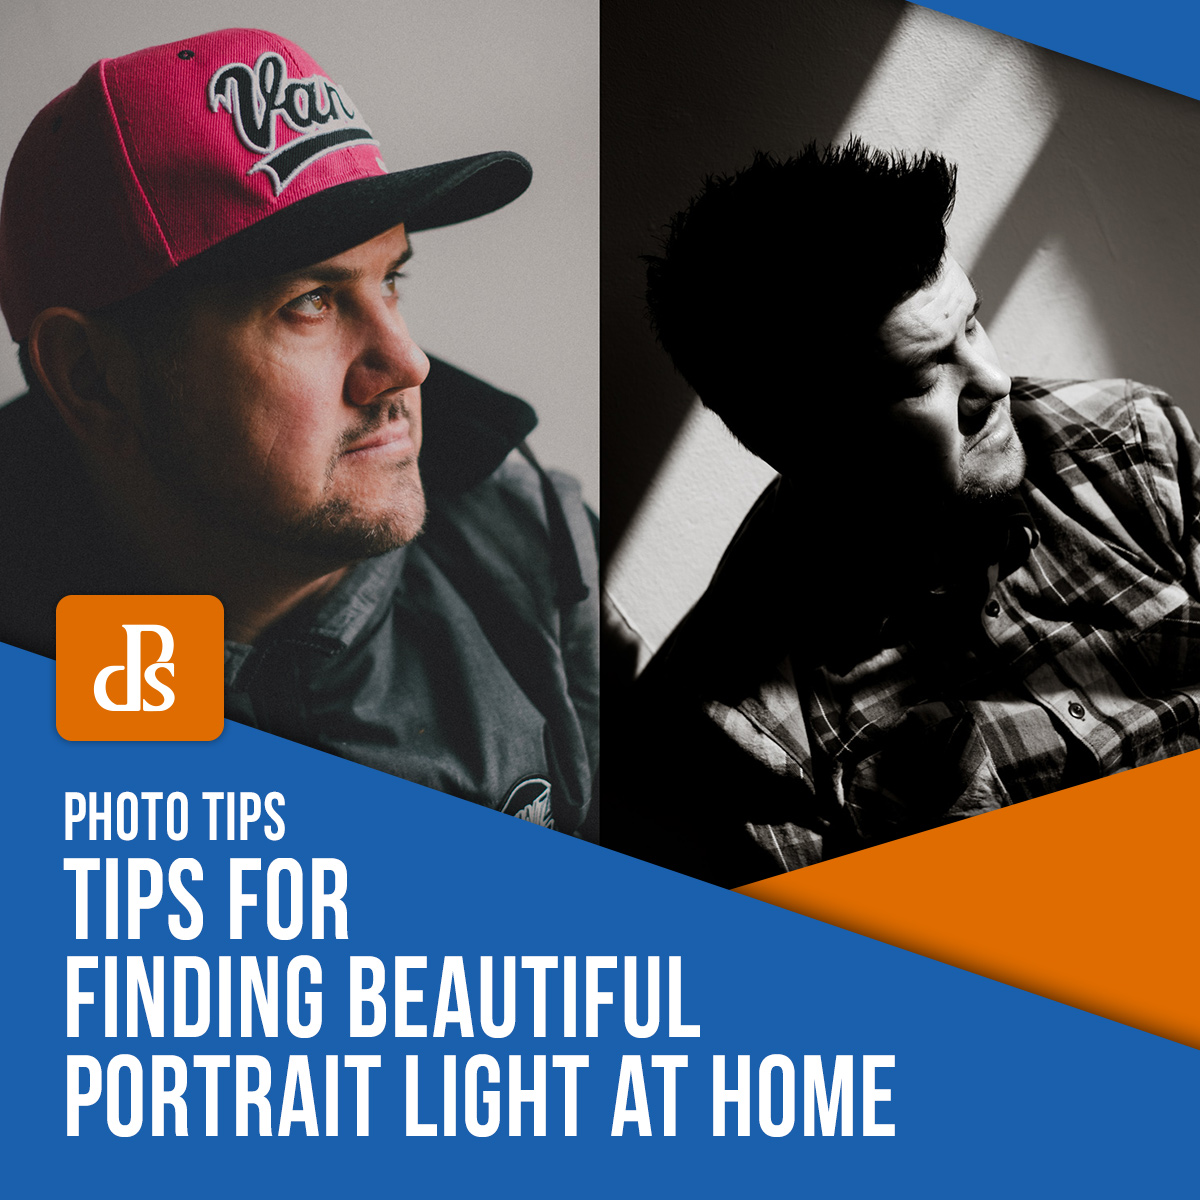 dps-finding-beautiful-portrait-light-at-home